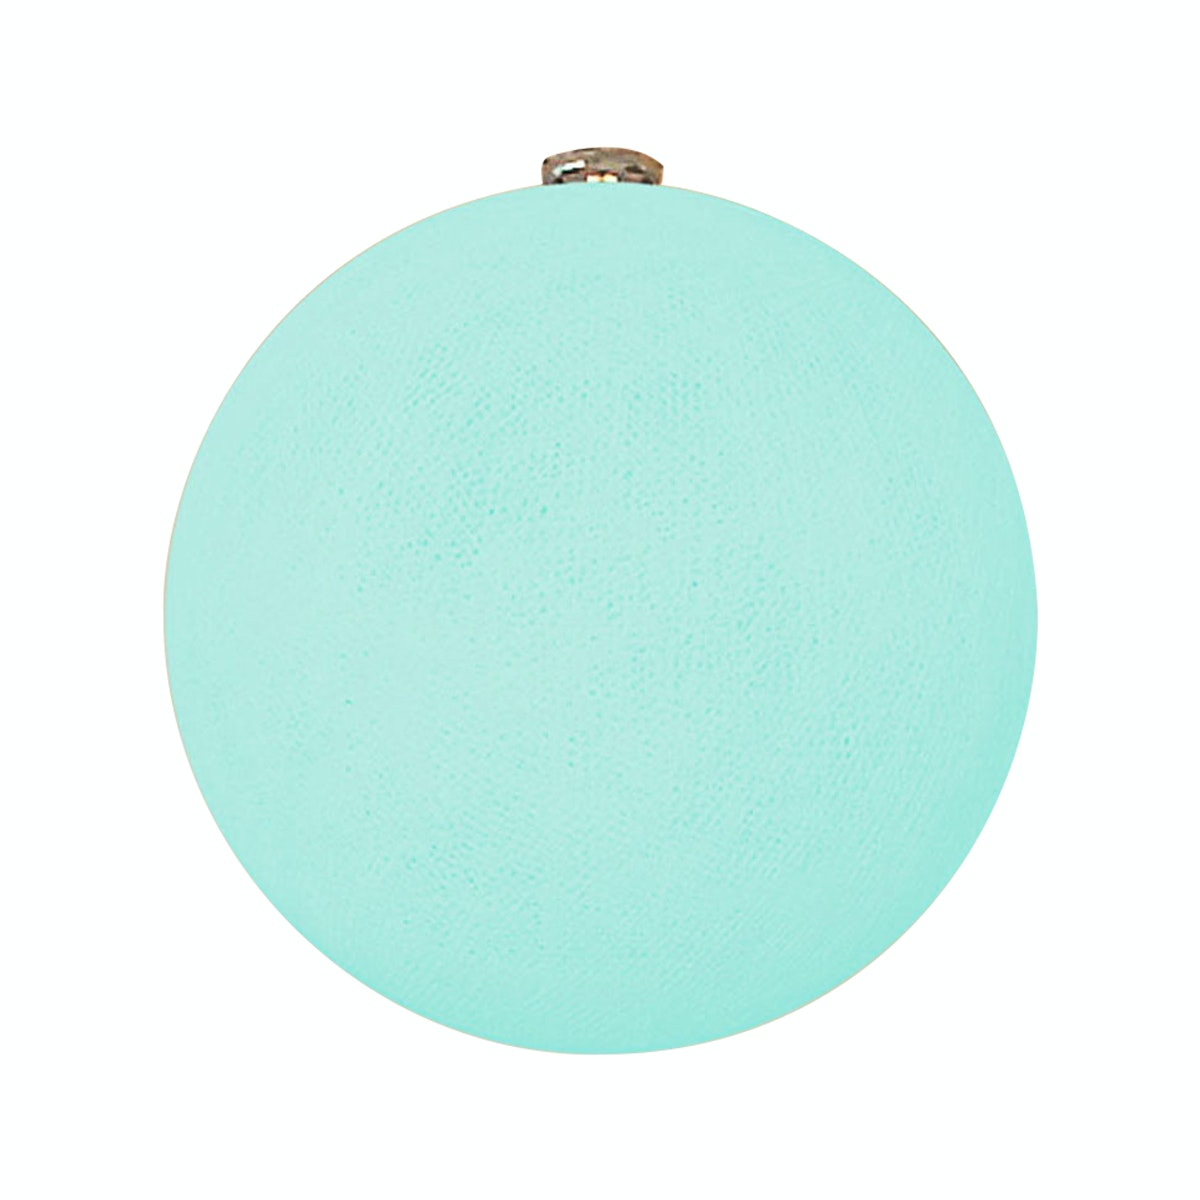 "Lightcraft Indonesia Big Cotton Ball 10"" Aqua"